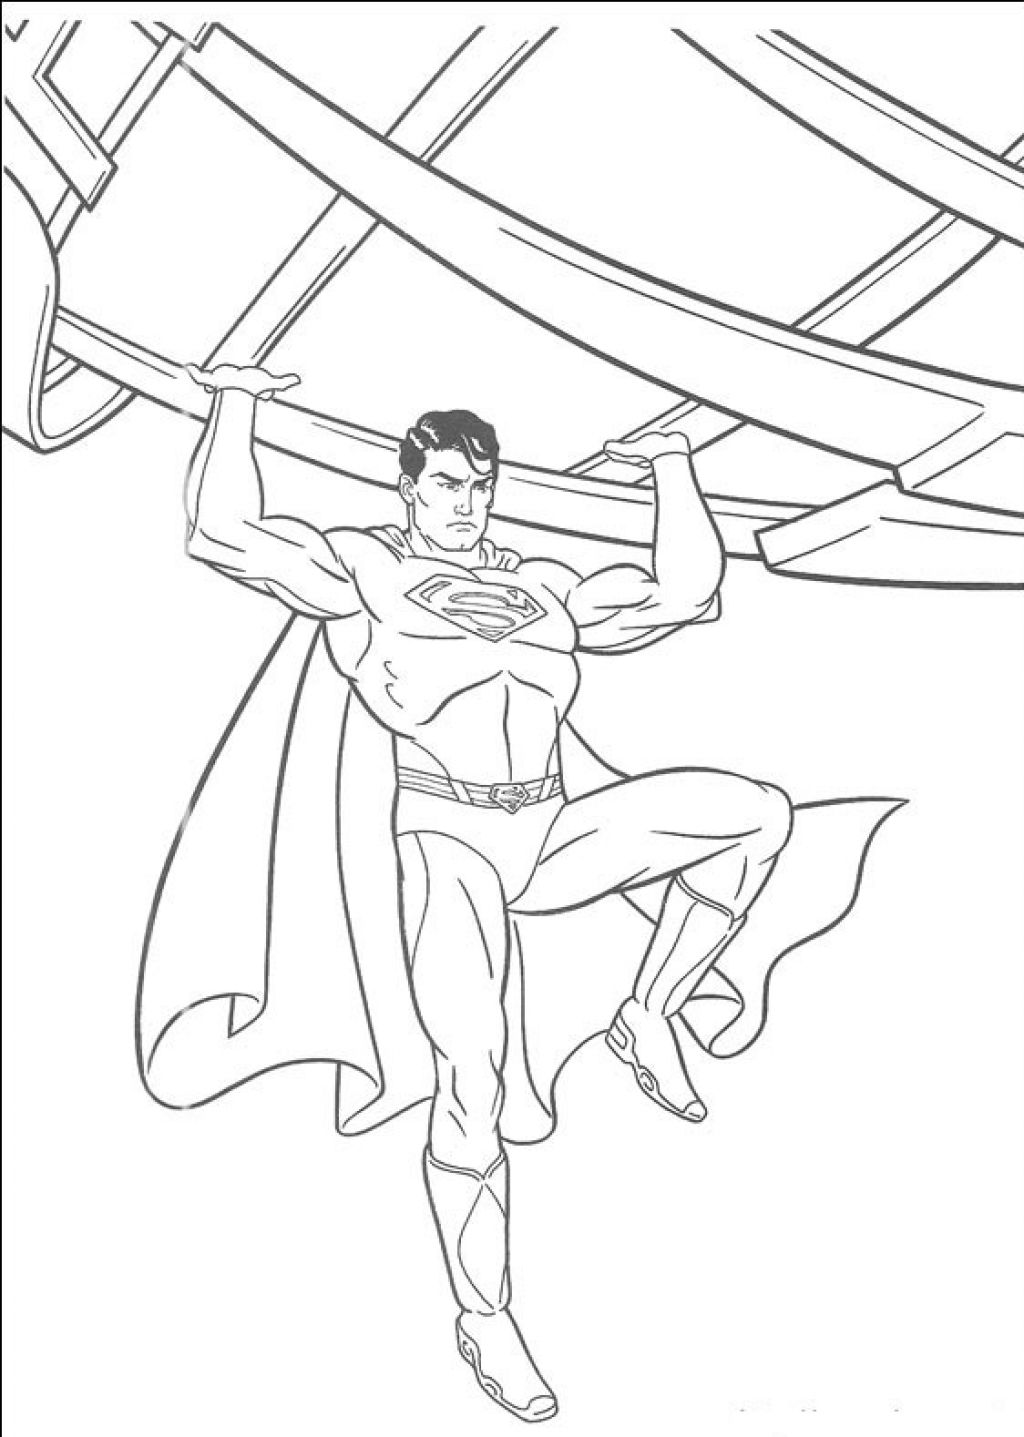 It is an image of Peaceful Superman Coloring Pages Printable